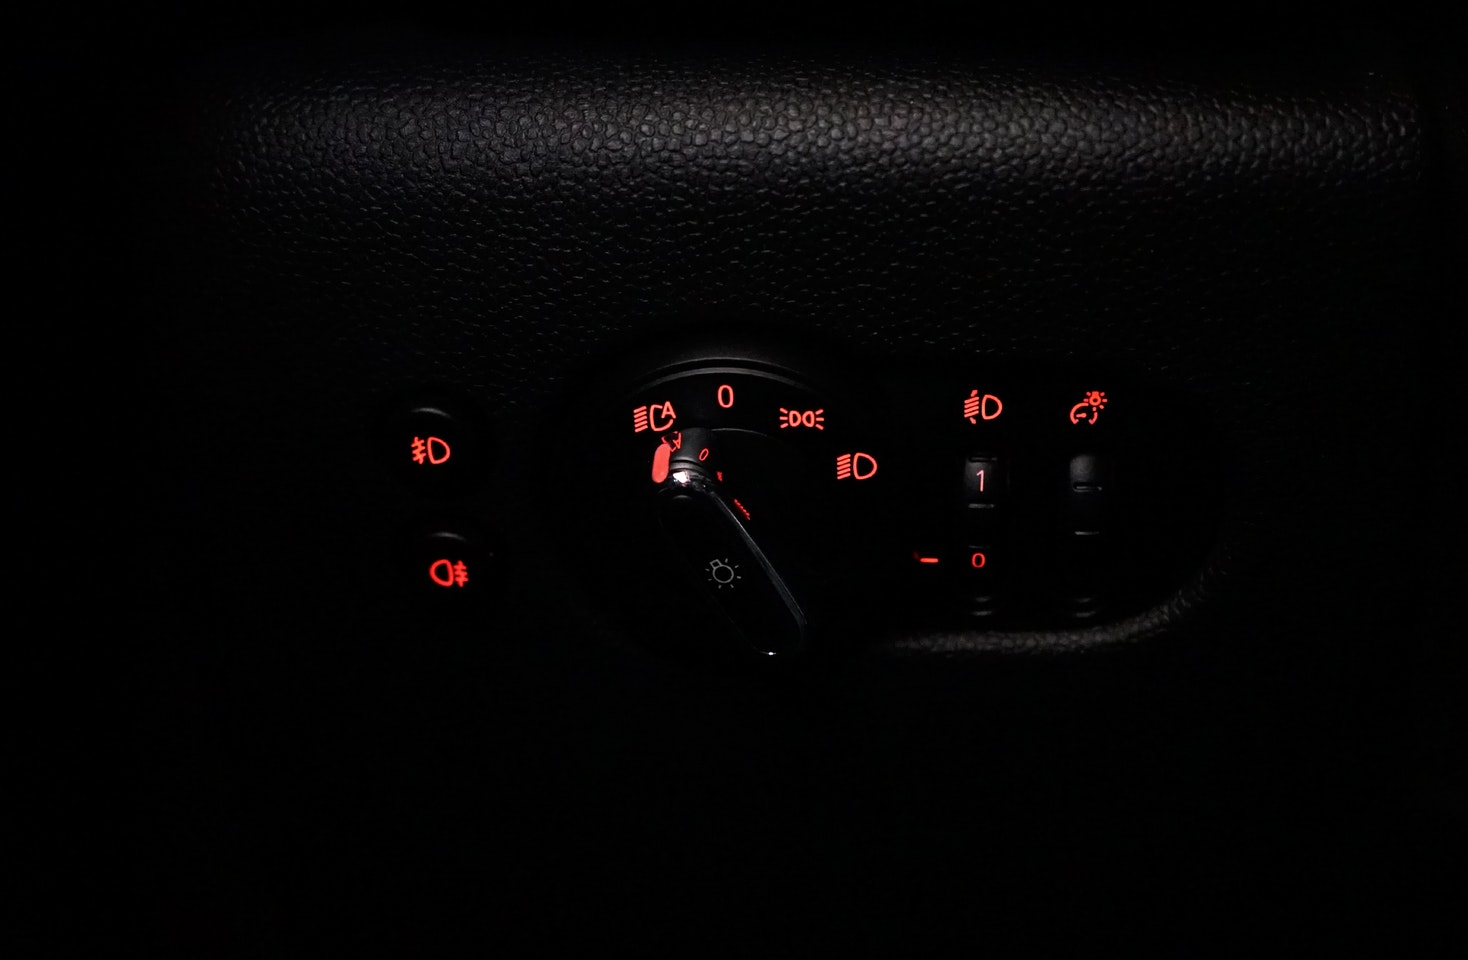 mycar-braine-lalleud-voitures-occasion-mini-cooper-one-first-21